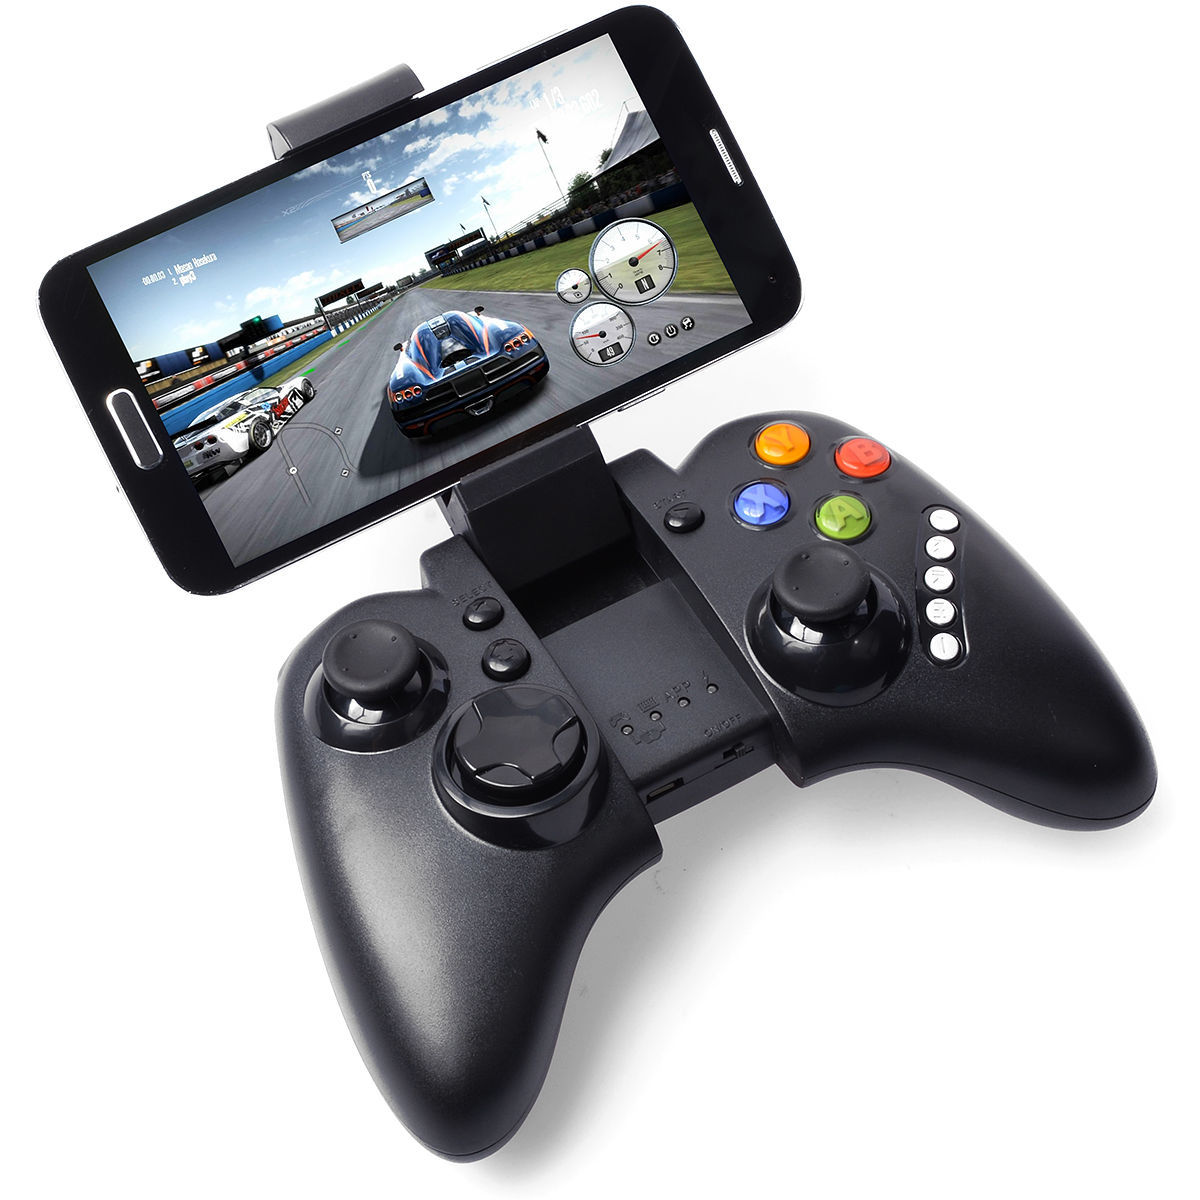 US $49 99 |Cdragon gamepad with holder for mobile phone Bluetooth game  console Android wireless set top box-in Gamepads from Consumer Electronics  on